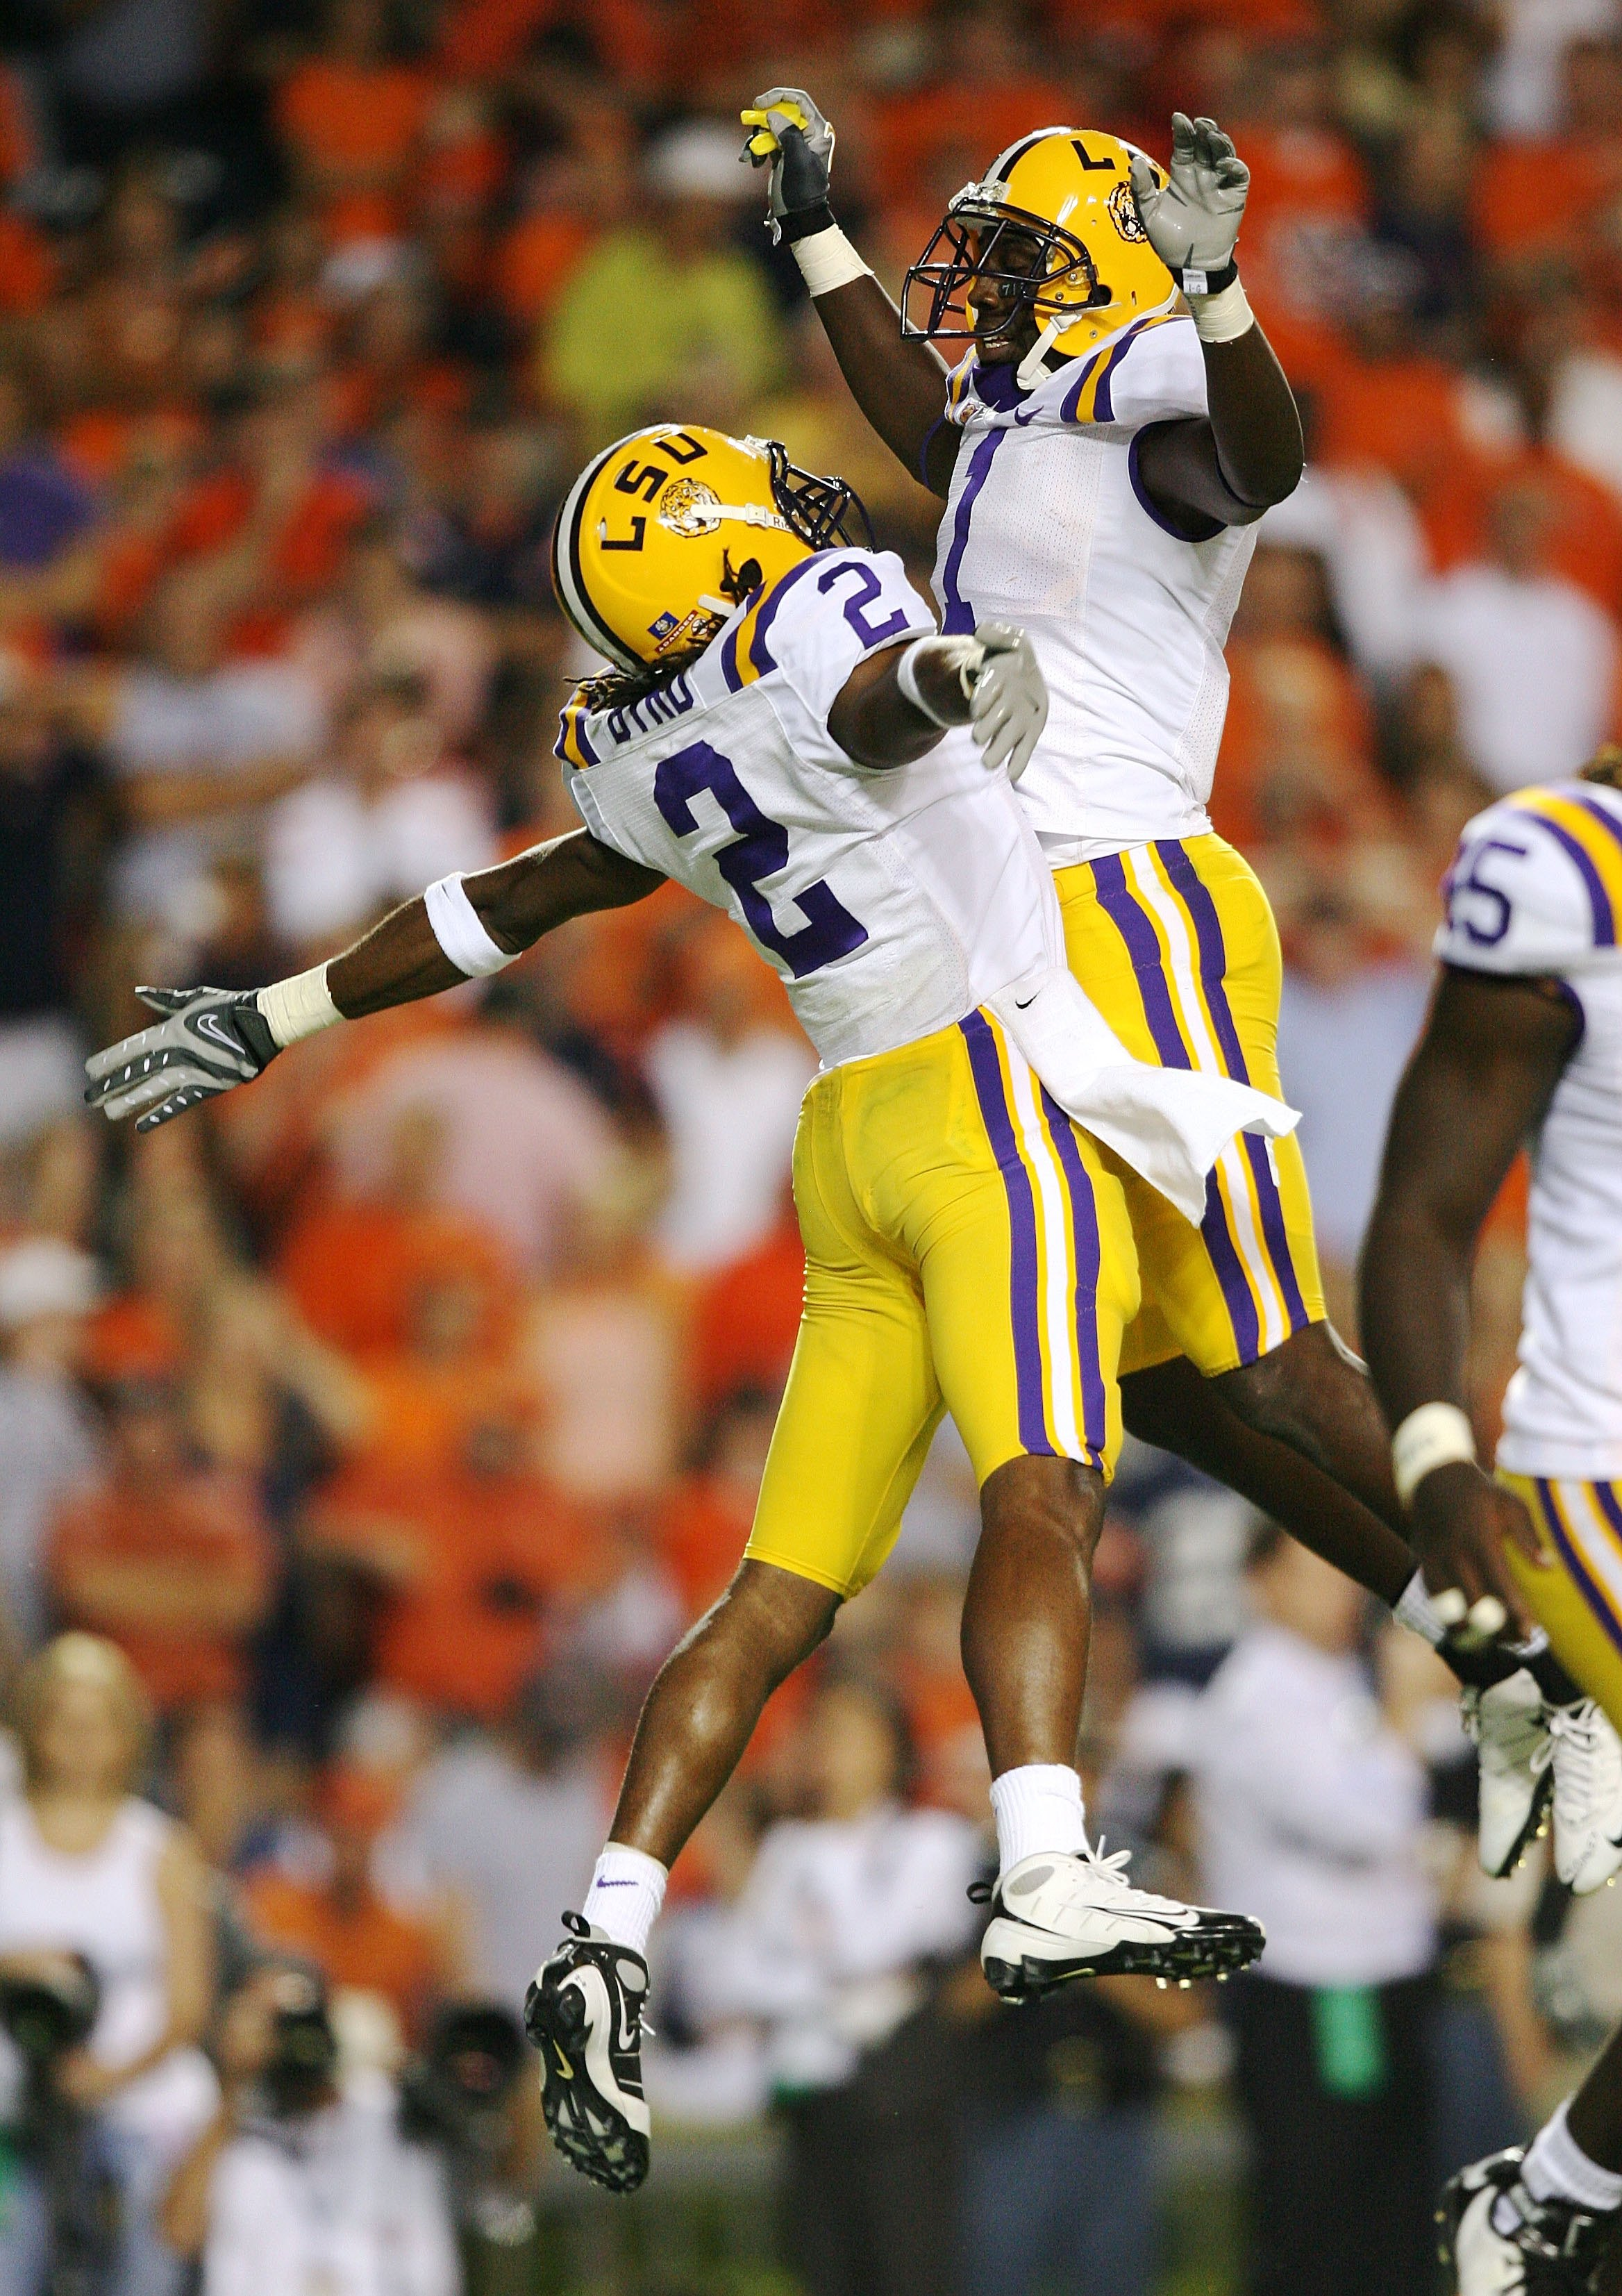 AUBURN, AL - SEPTEMBER 20:  Brandon LaFell #1 and Demetrius Byrd #2 of the LSU Tigers celebrate a touchdown catch by Byrd against the Auburn Tigers at Jordan-Hare Stadium on September 20, 2008 in Auburn, Alabama. LSU defeated Auburn 26-21.  (Photo by Doug